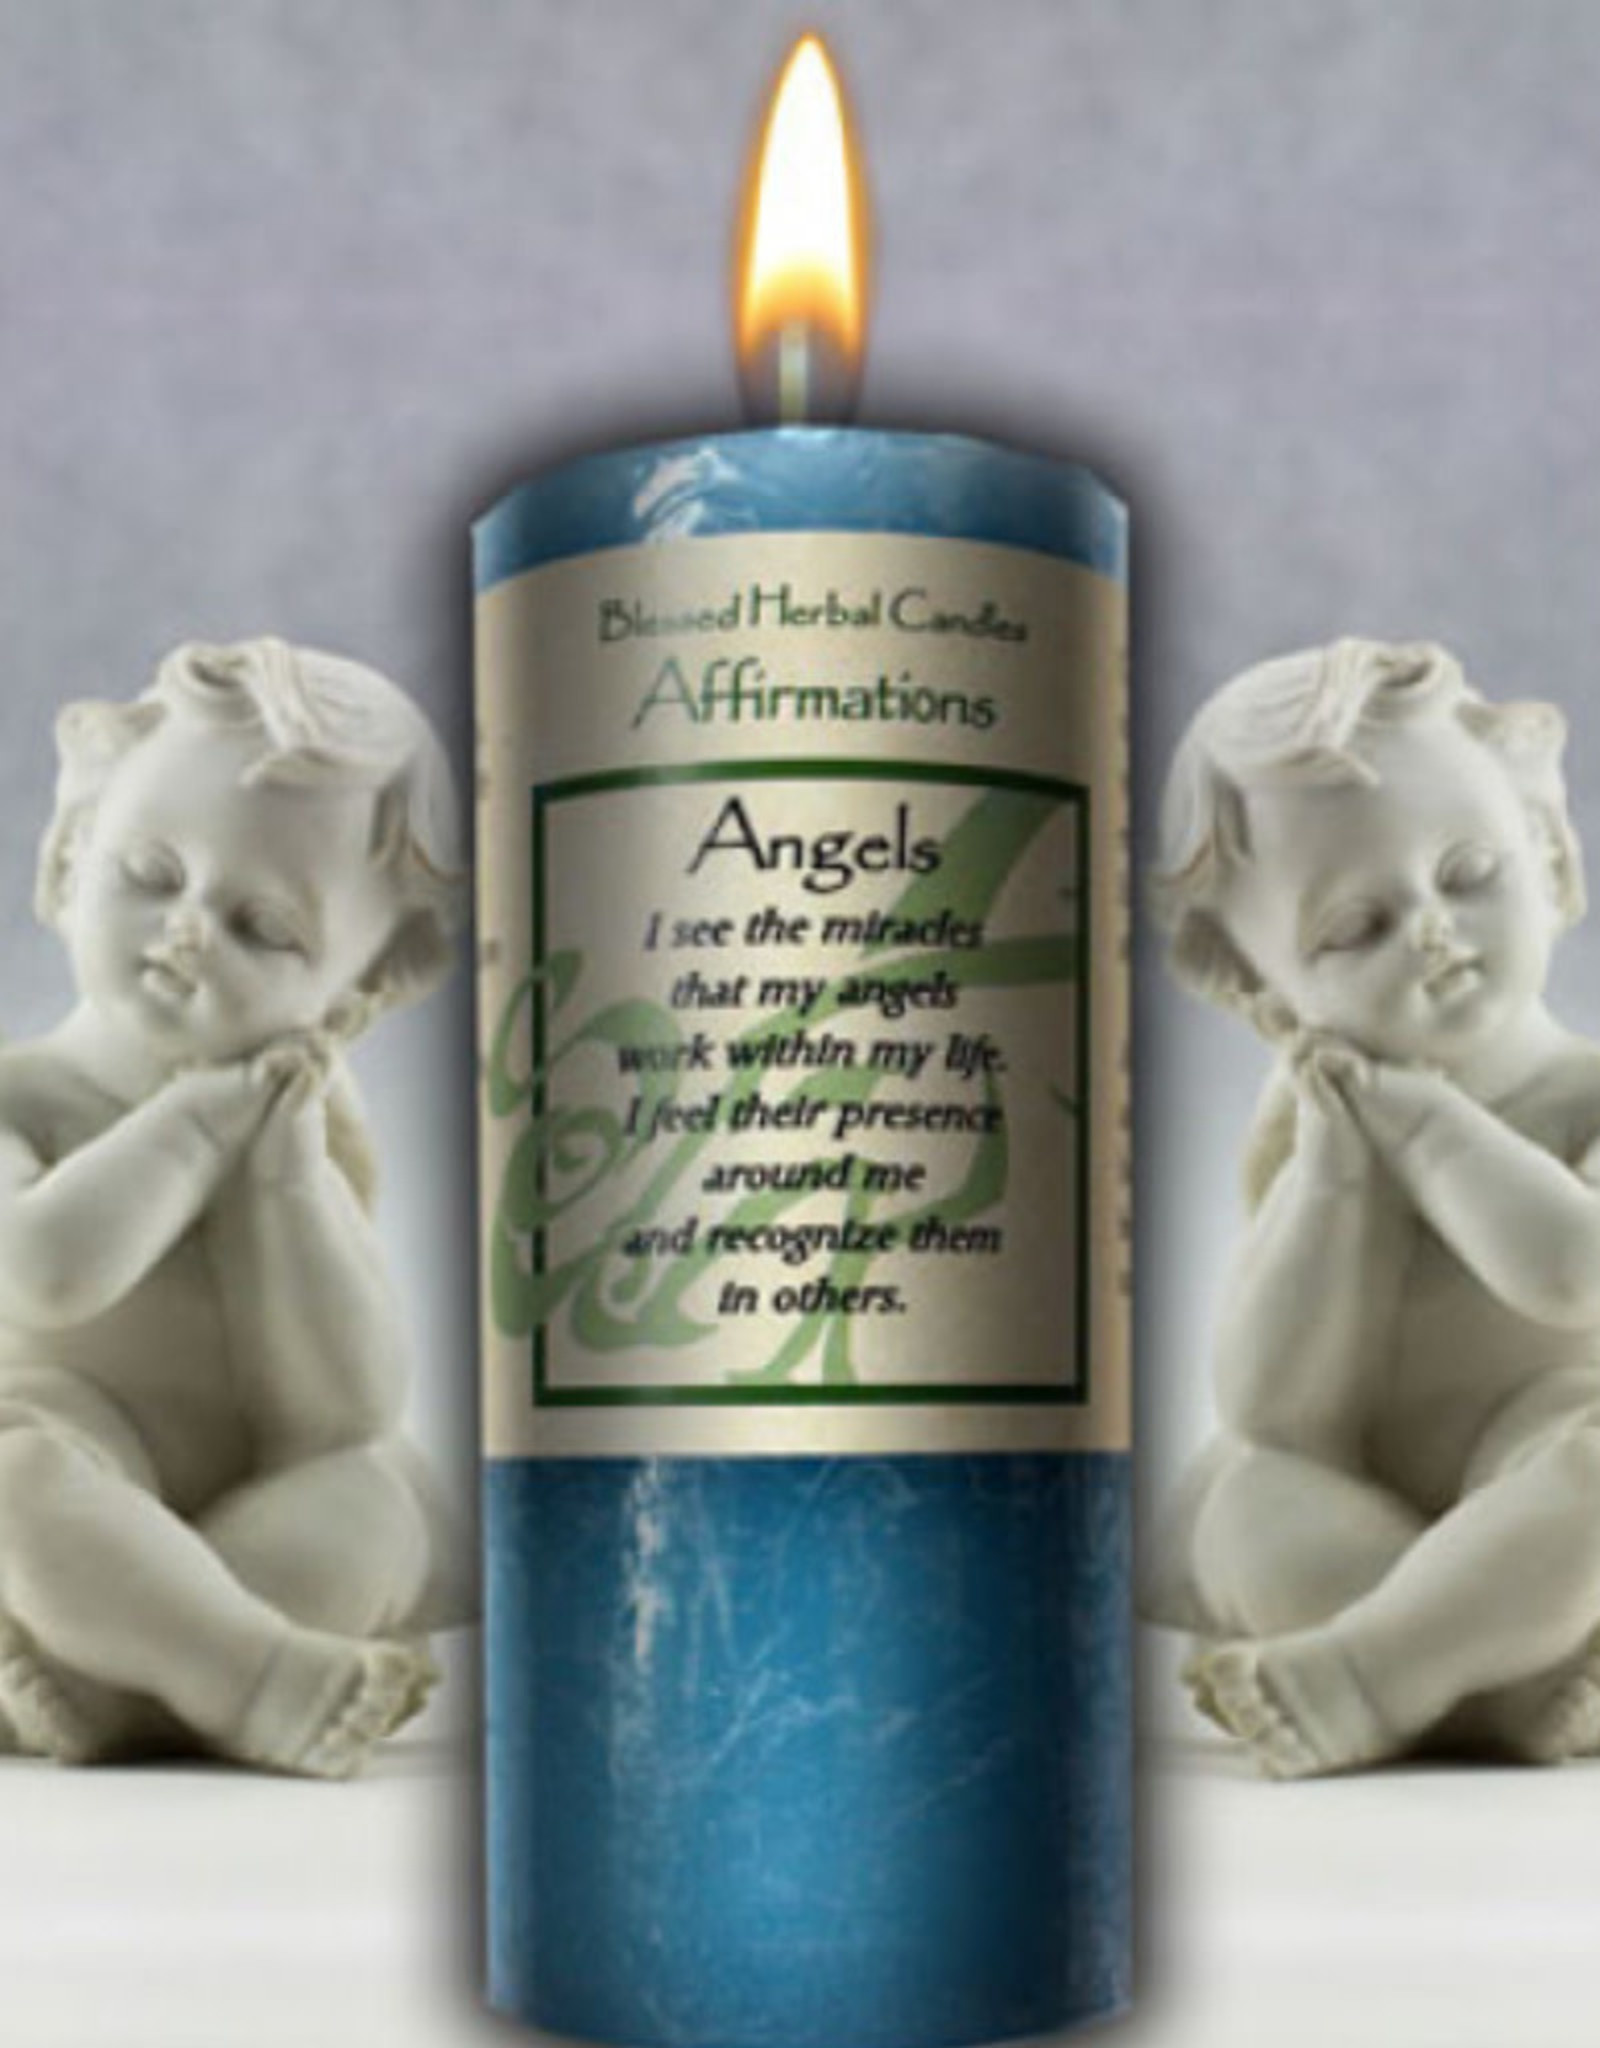 Coventry Creations Blessed Herbal Candle - Angels